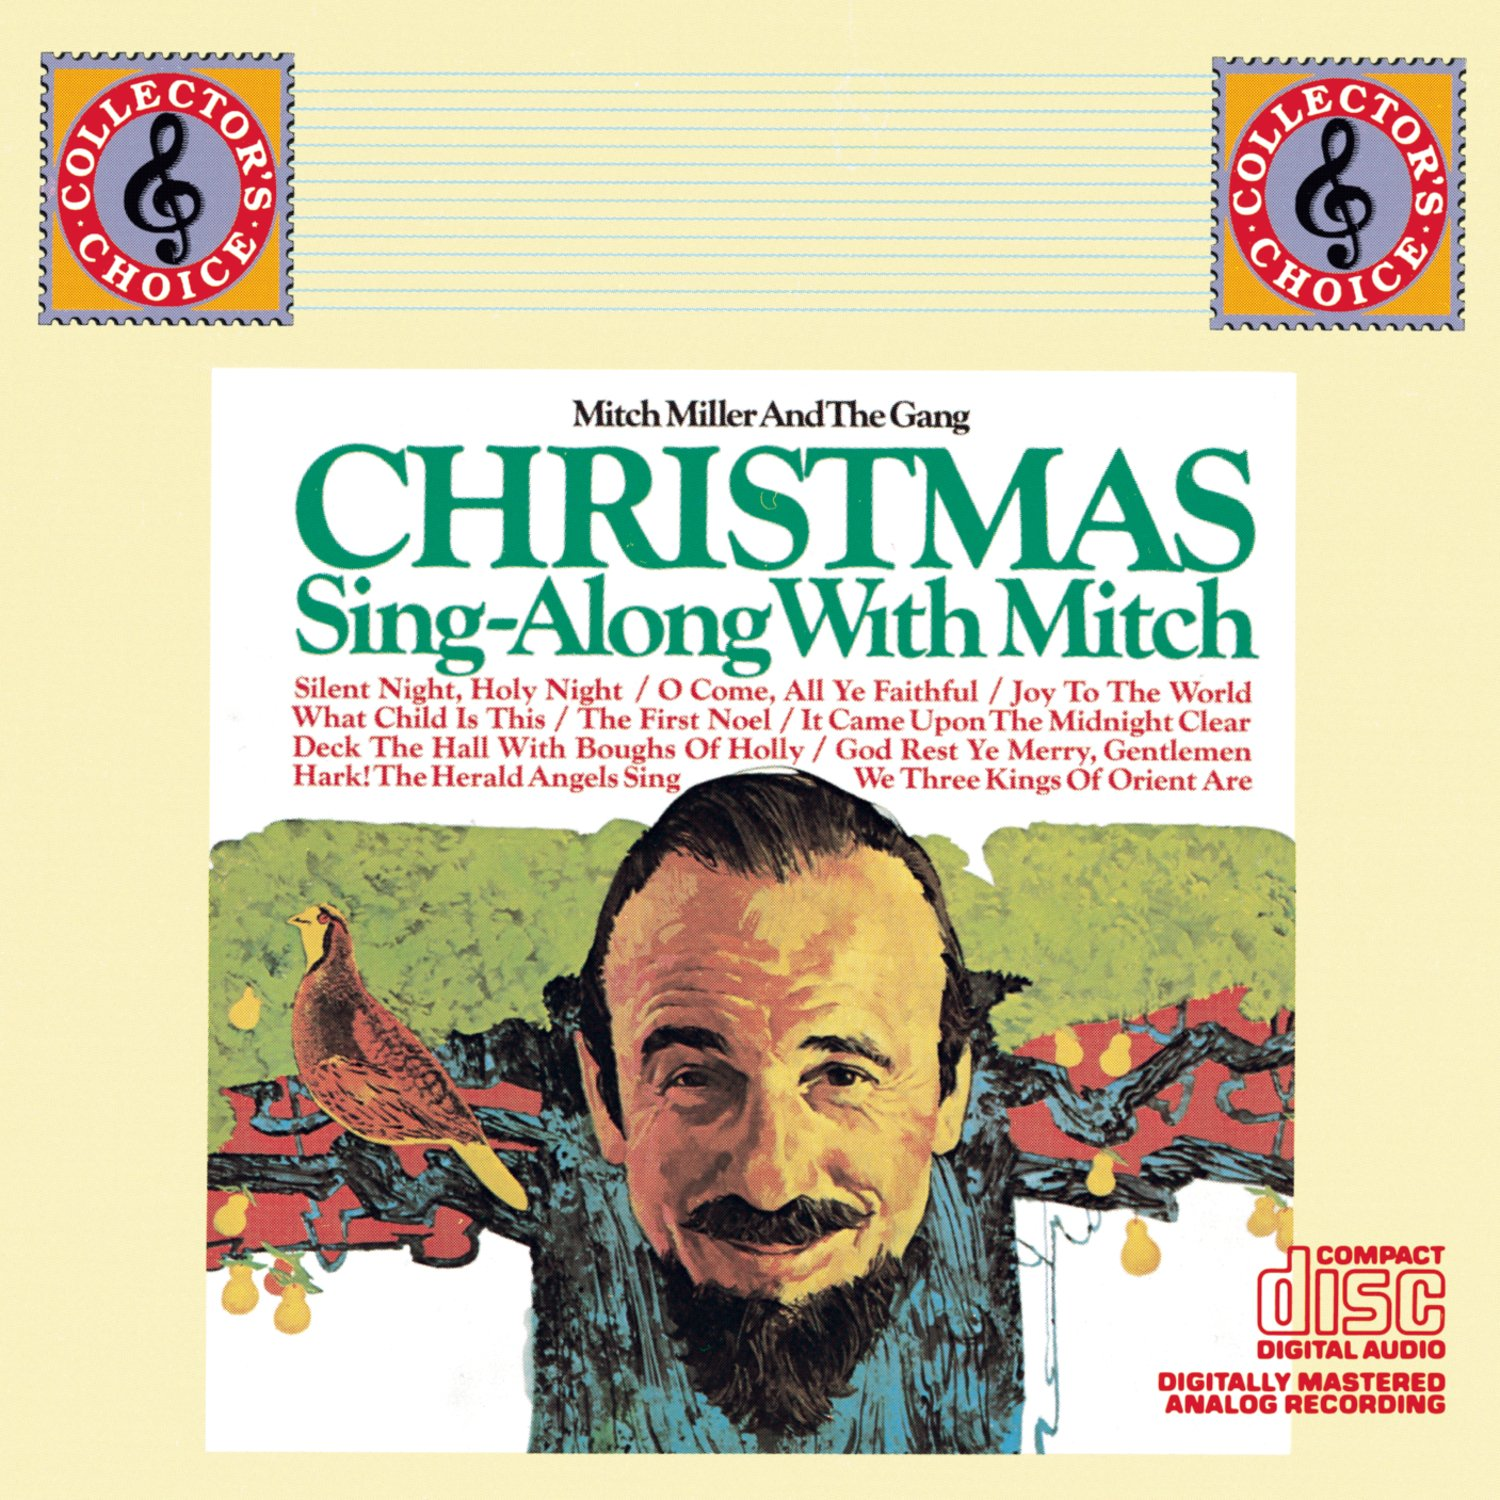 Mitch Miller and The Gang - Christmas Sing-Along With Mitch - Amazon ...